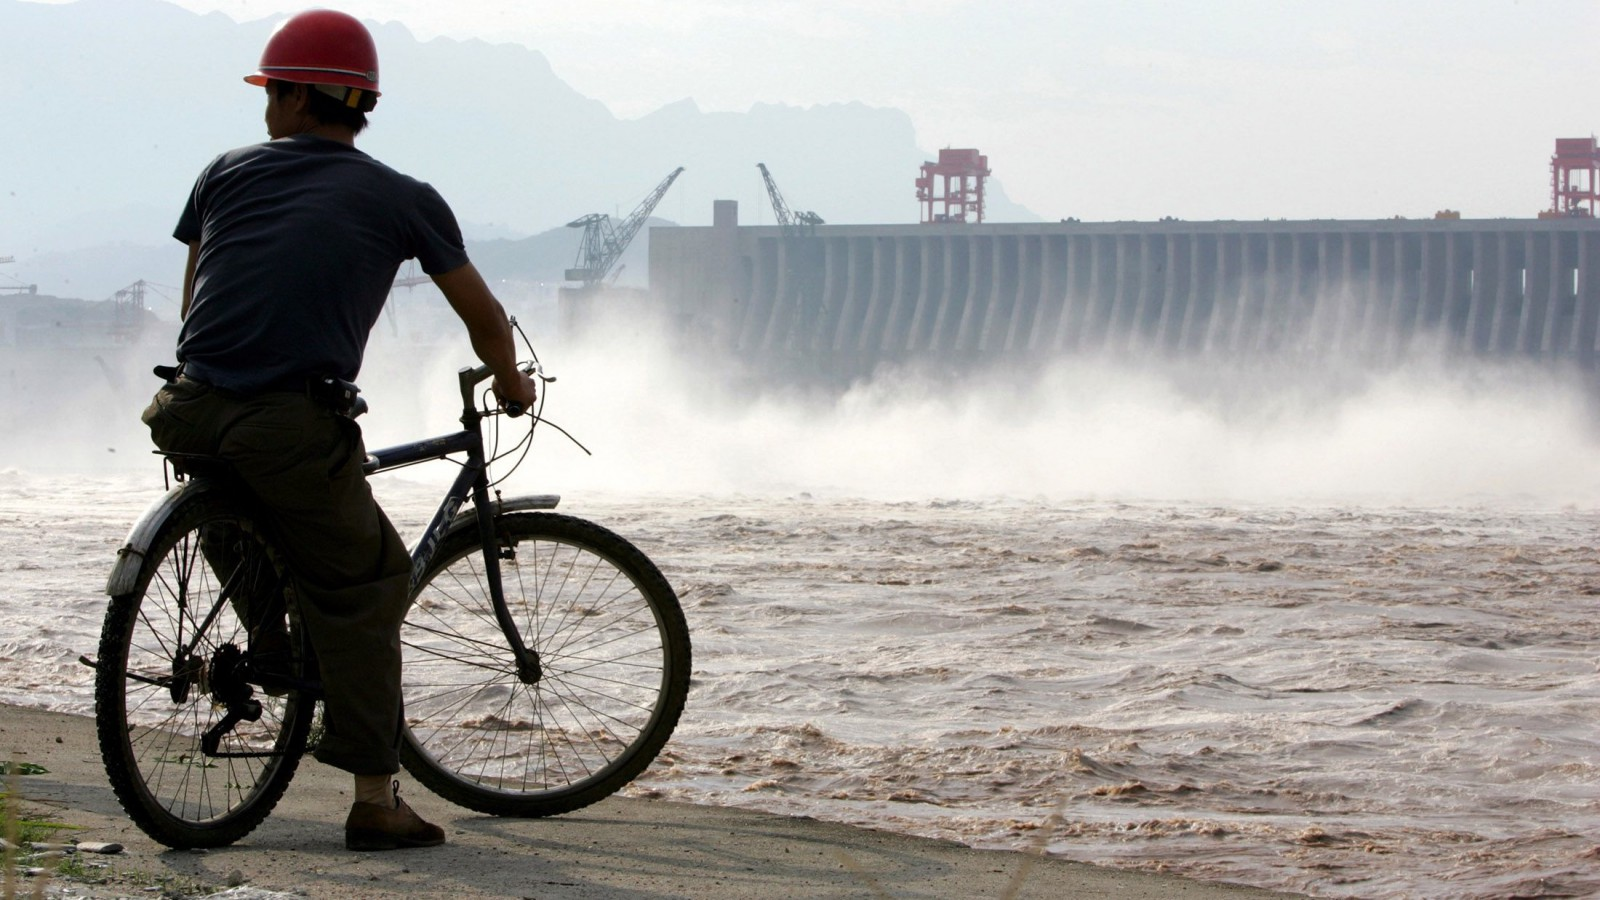 A Chinese worker looks at water gushing from open sluice gates at the Three Gorges dam.